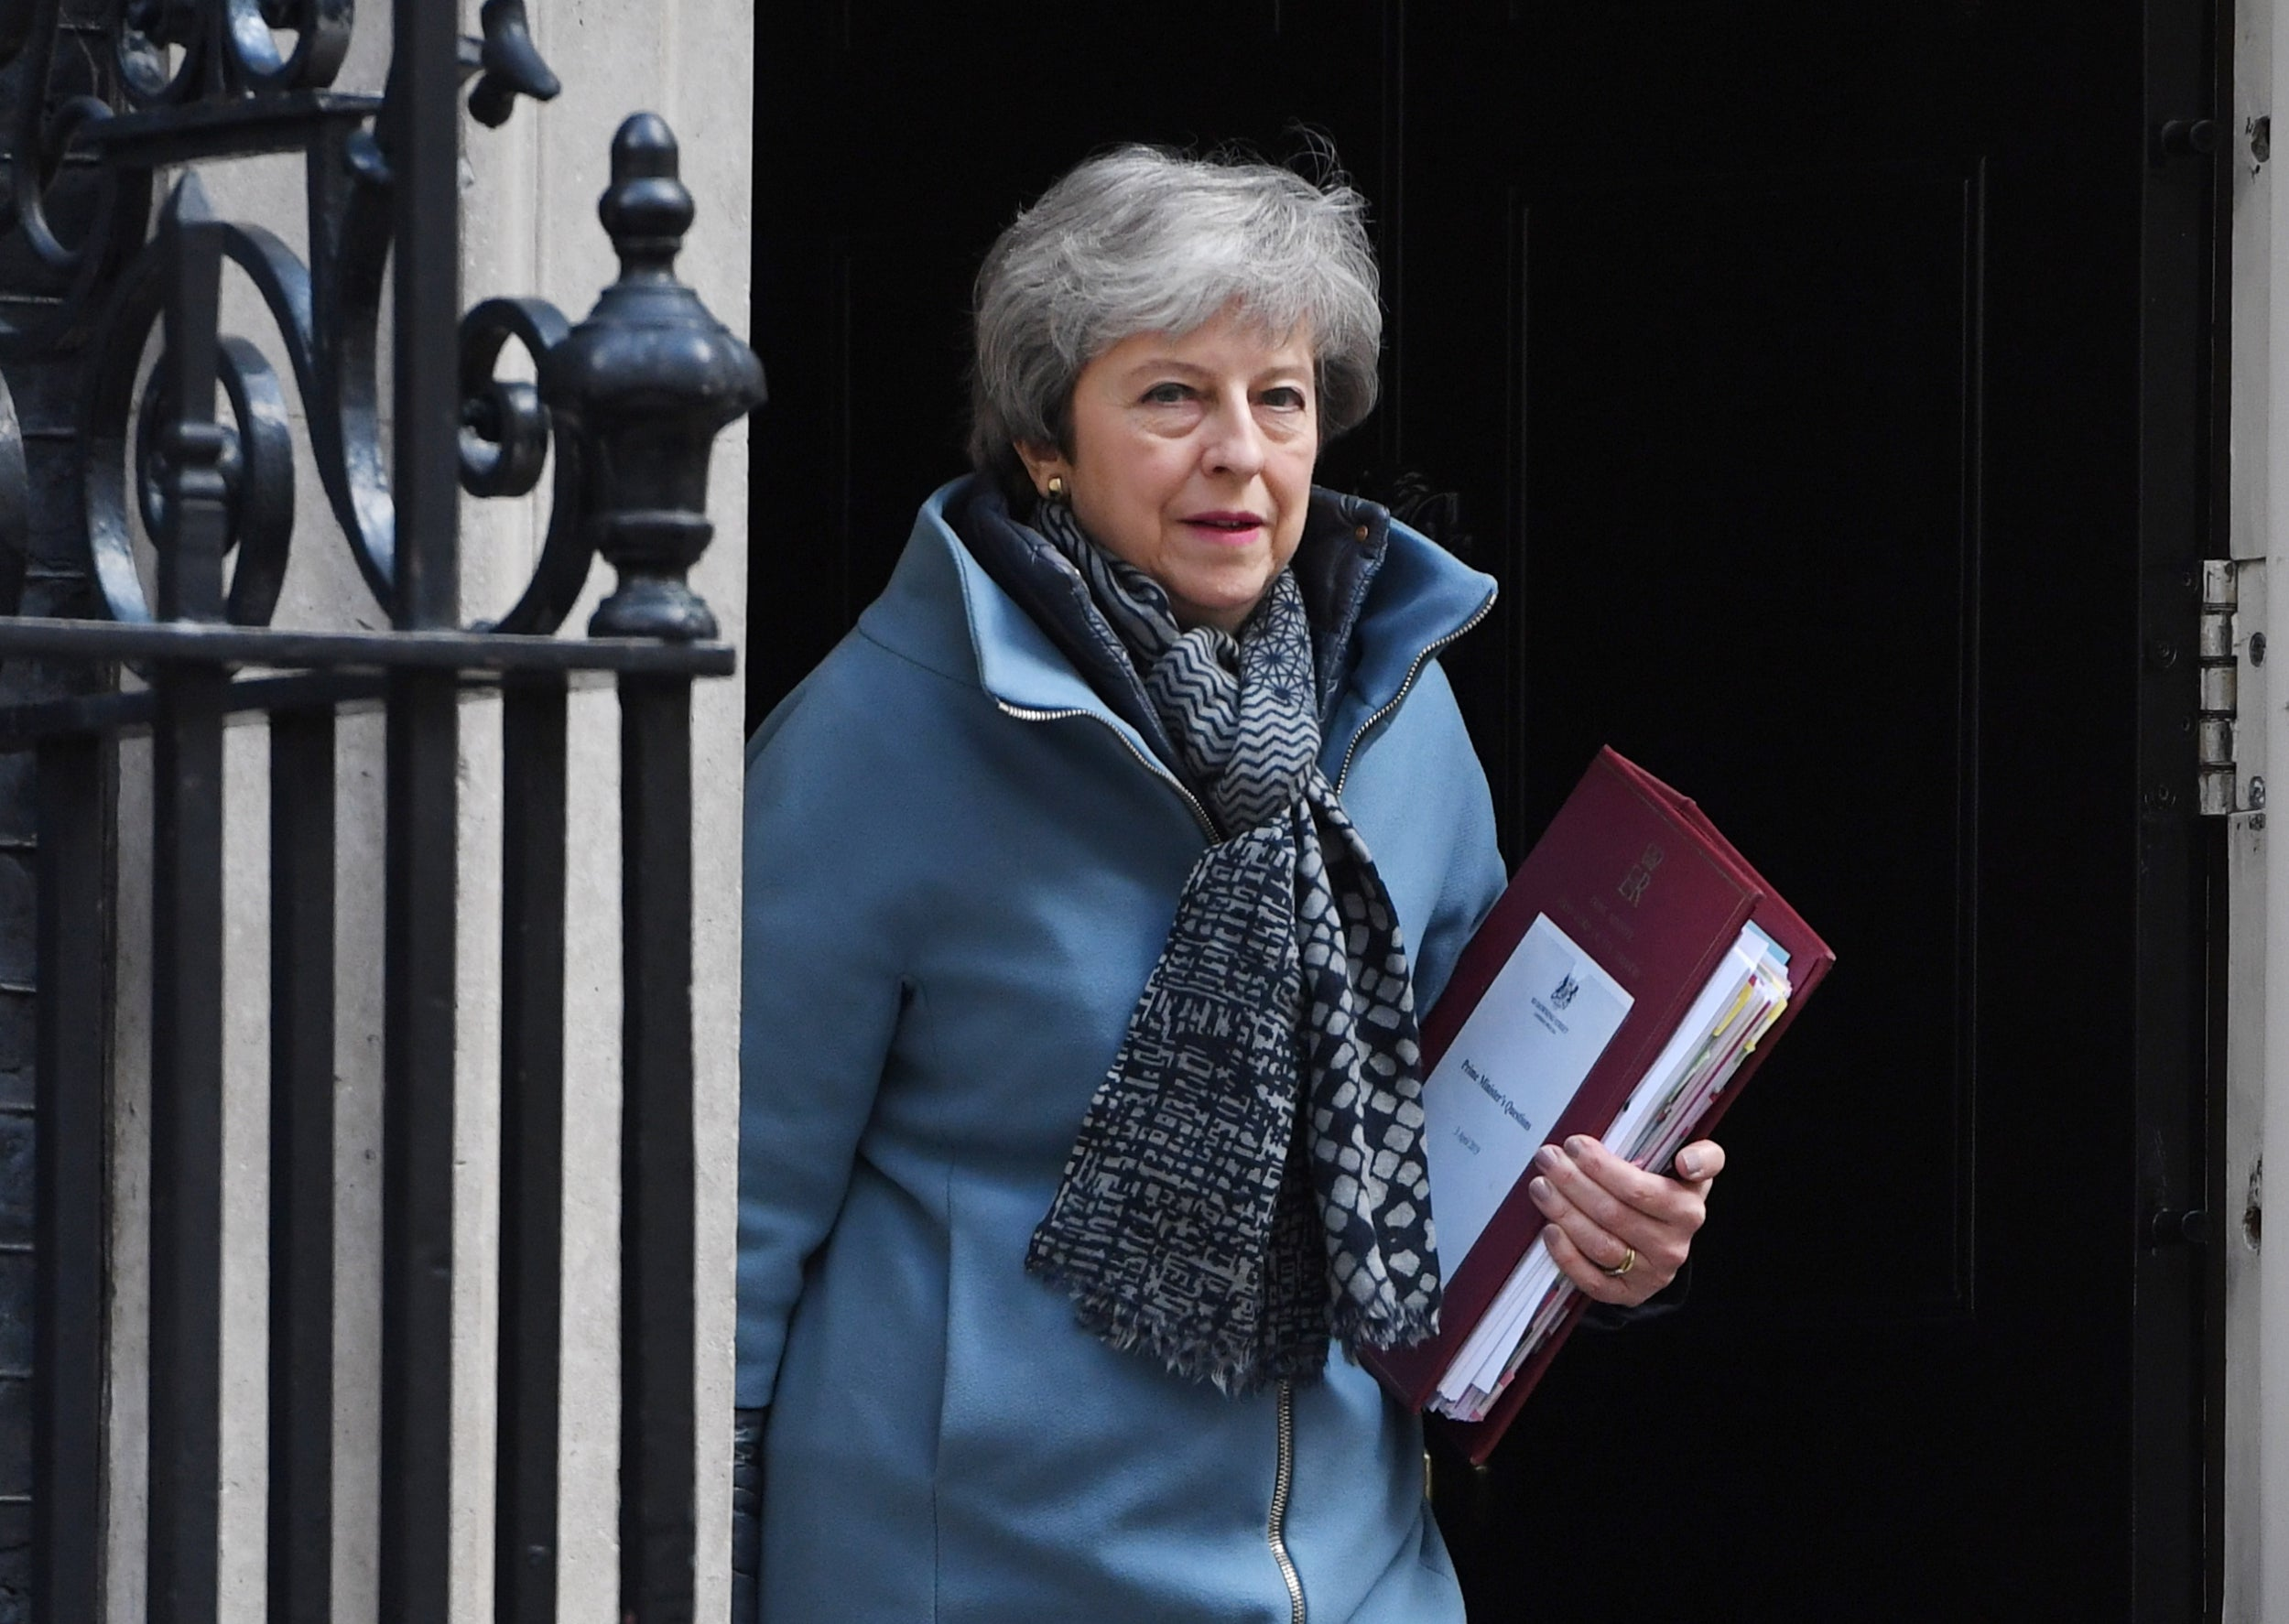 Brexit delay: Theresa May writes to Donald Tusk to ask for